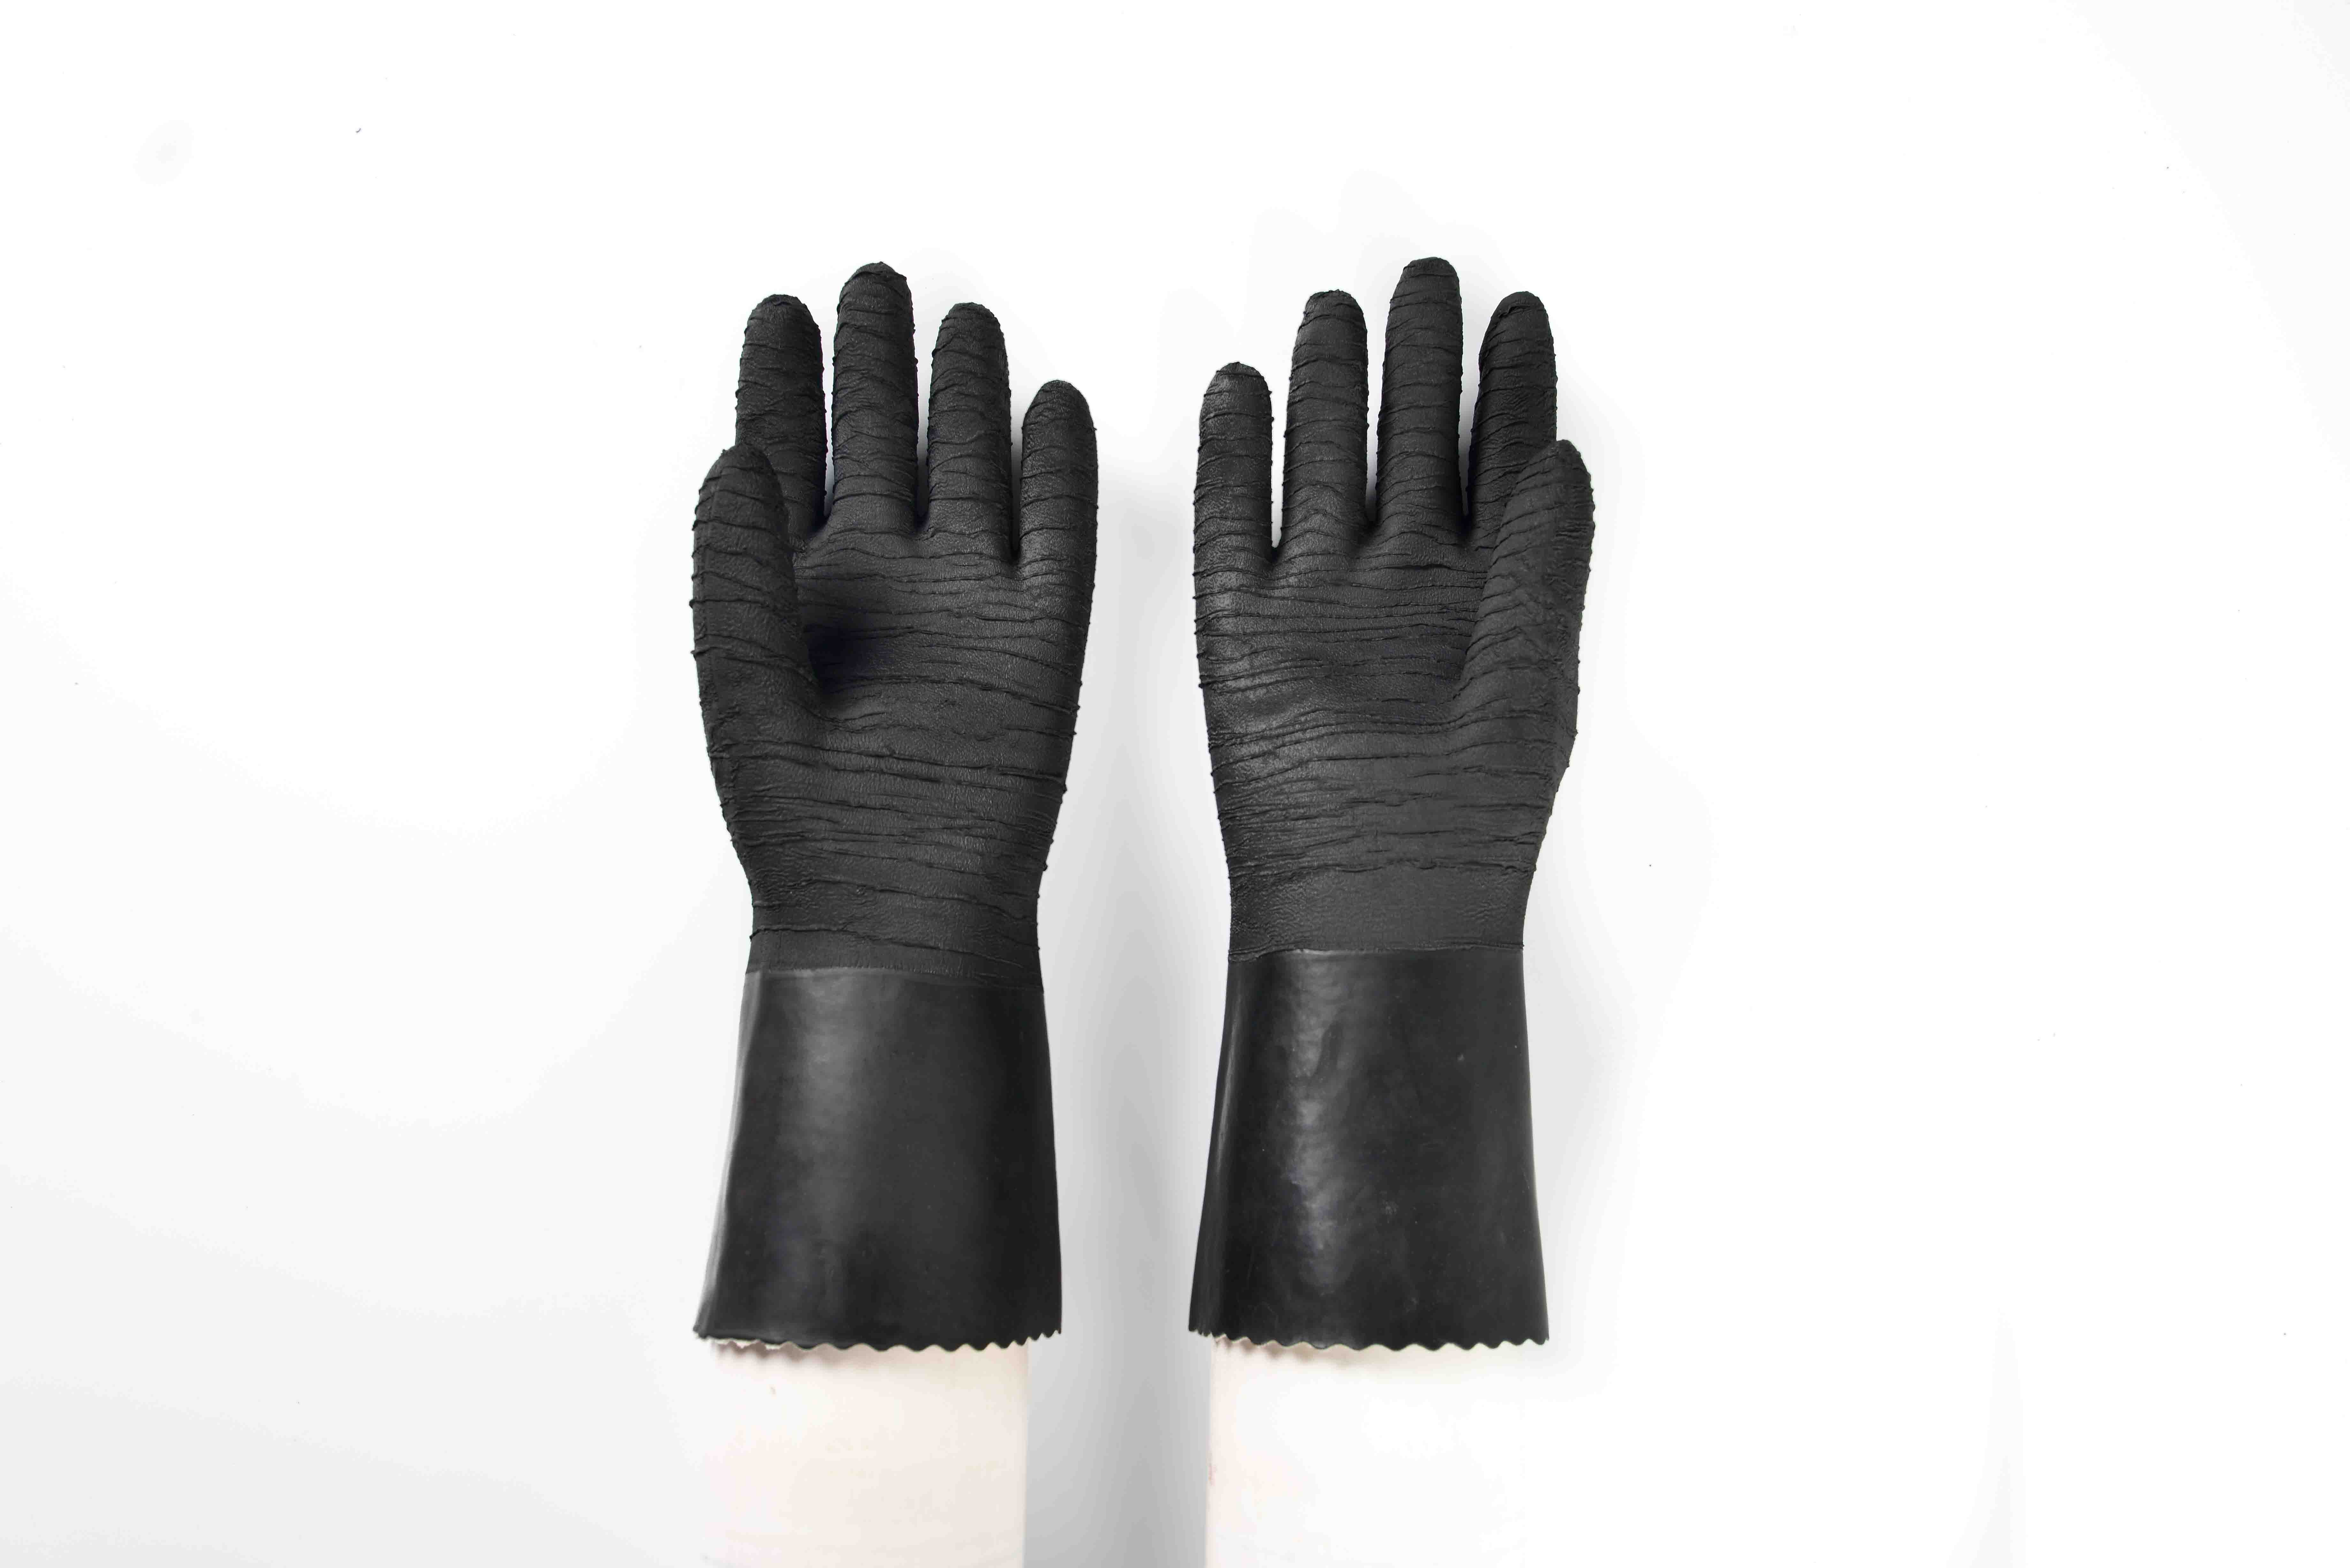 Good quality 100% 12″ rubber glove with cotton linning-rough finish for Manchester